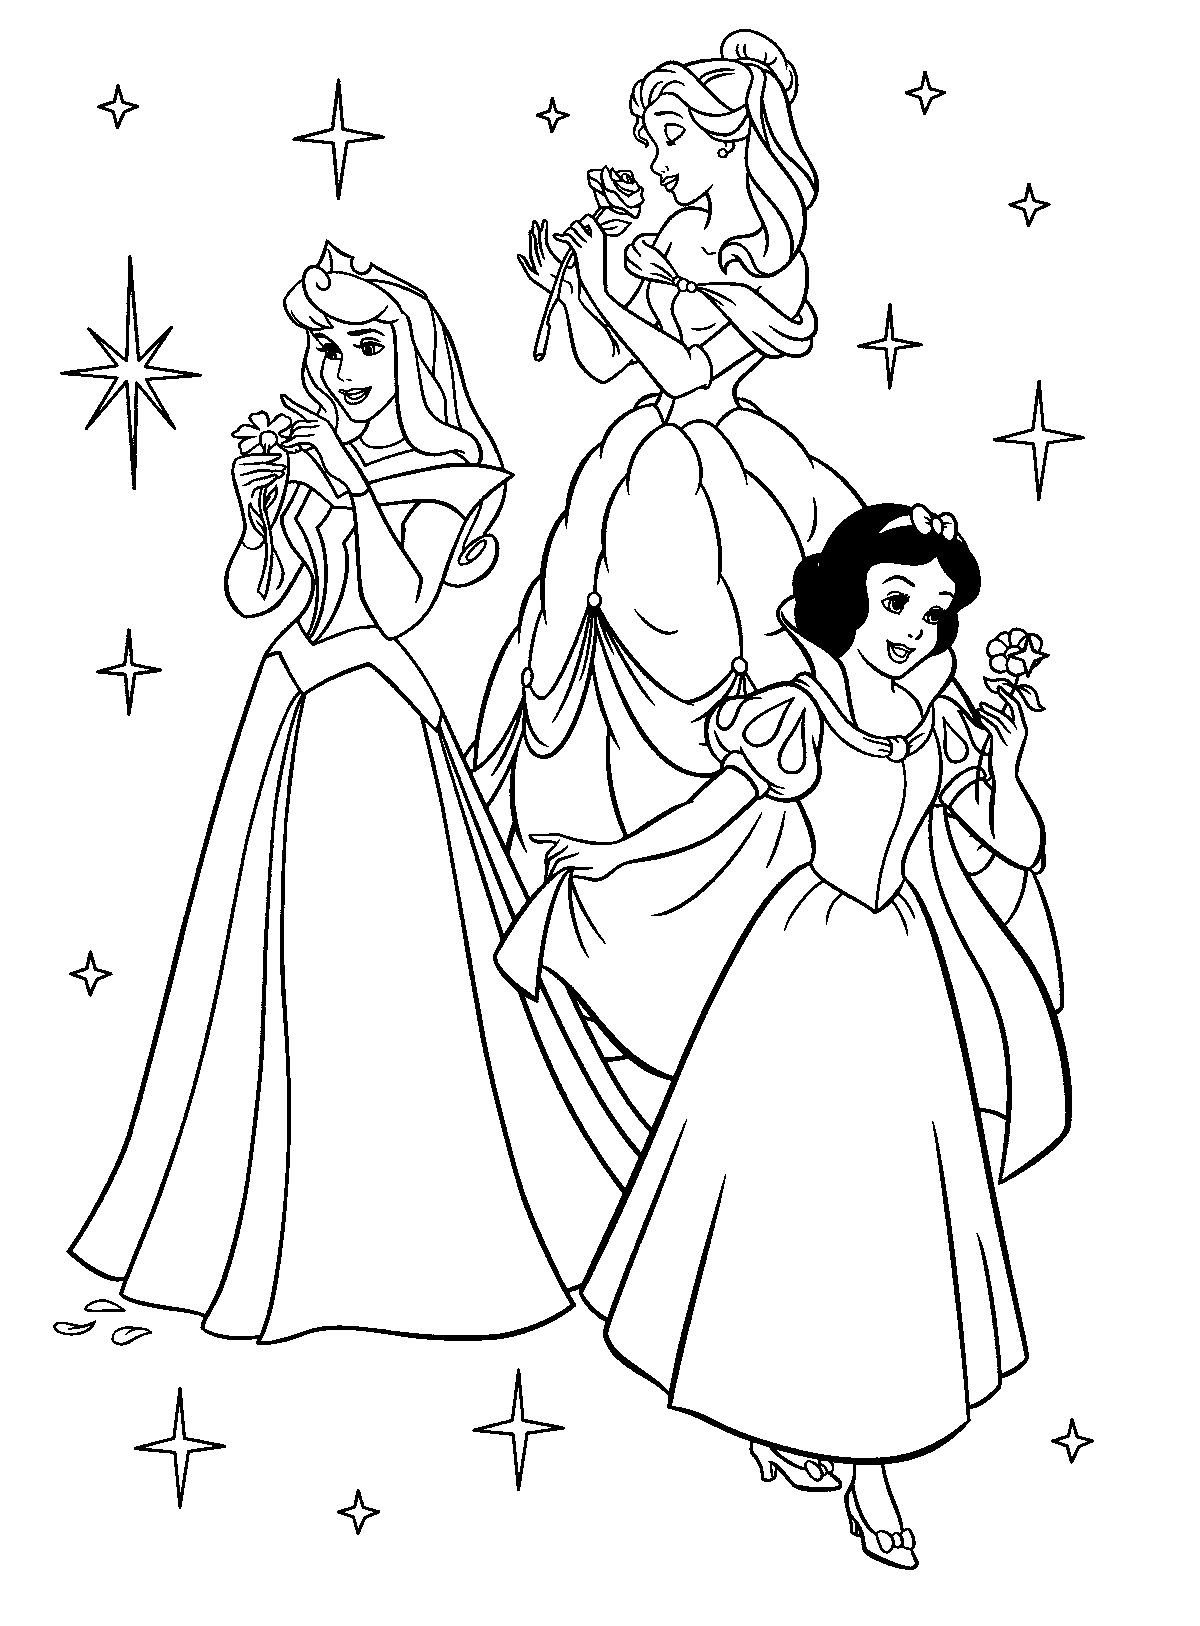 disney princess printable coloring pages - disney princess coloring pages